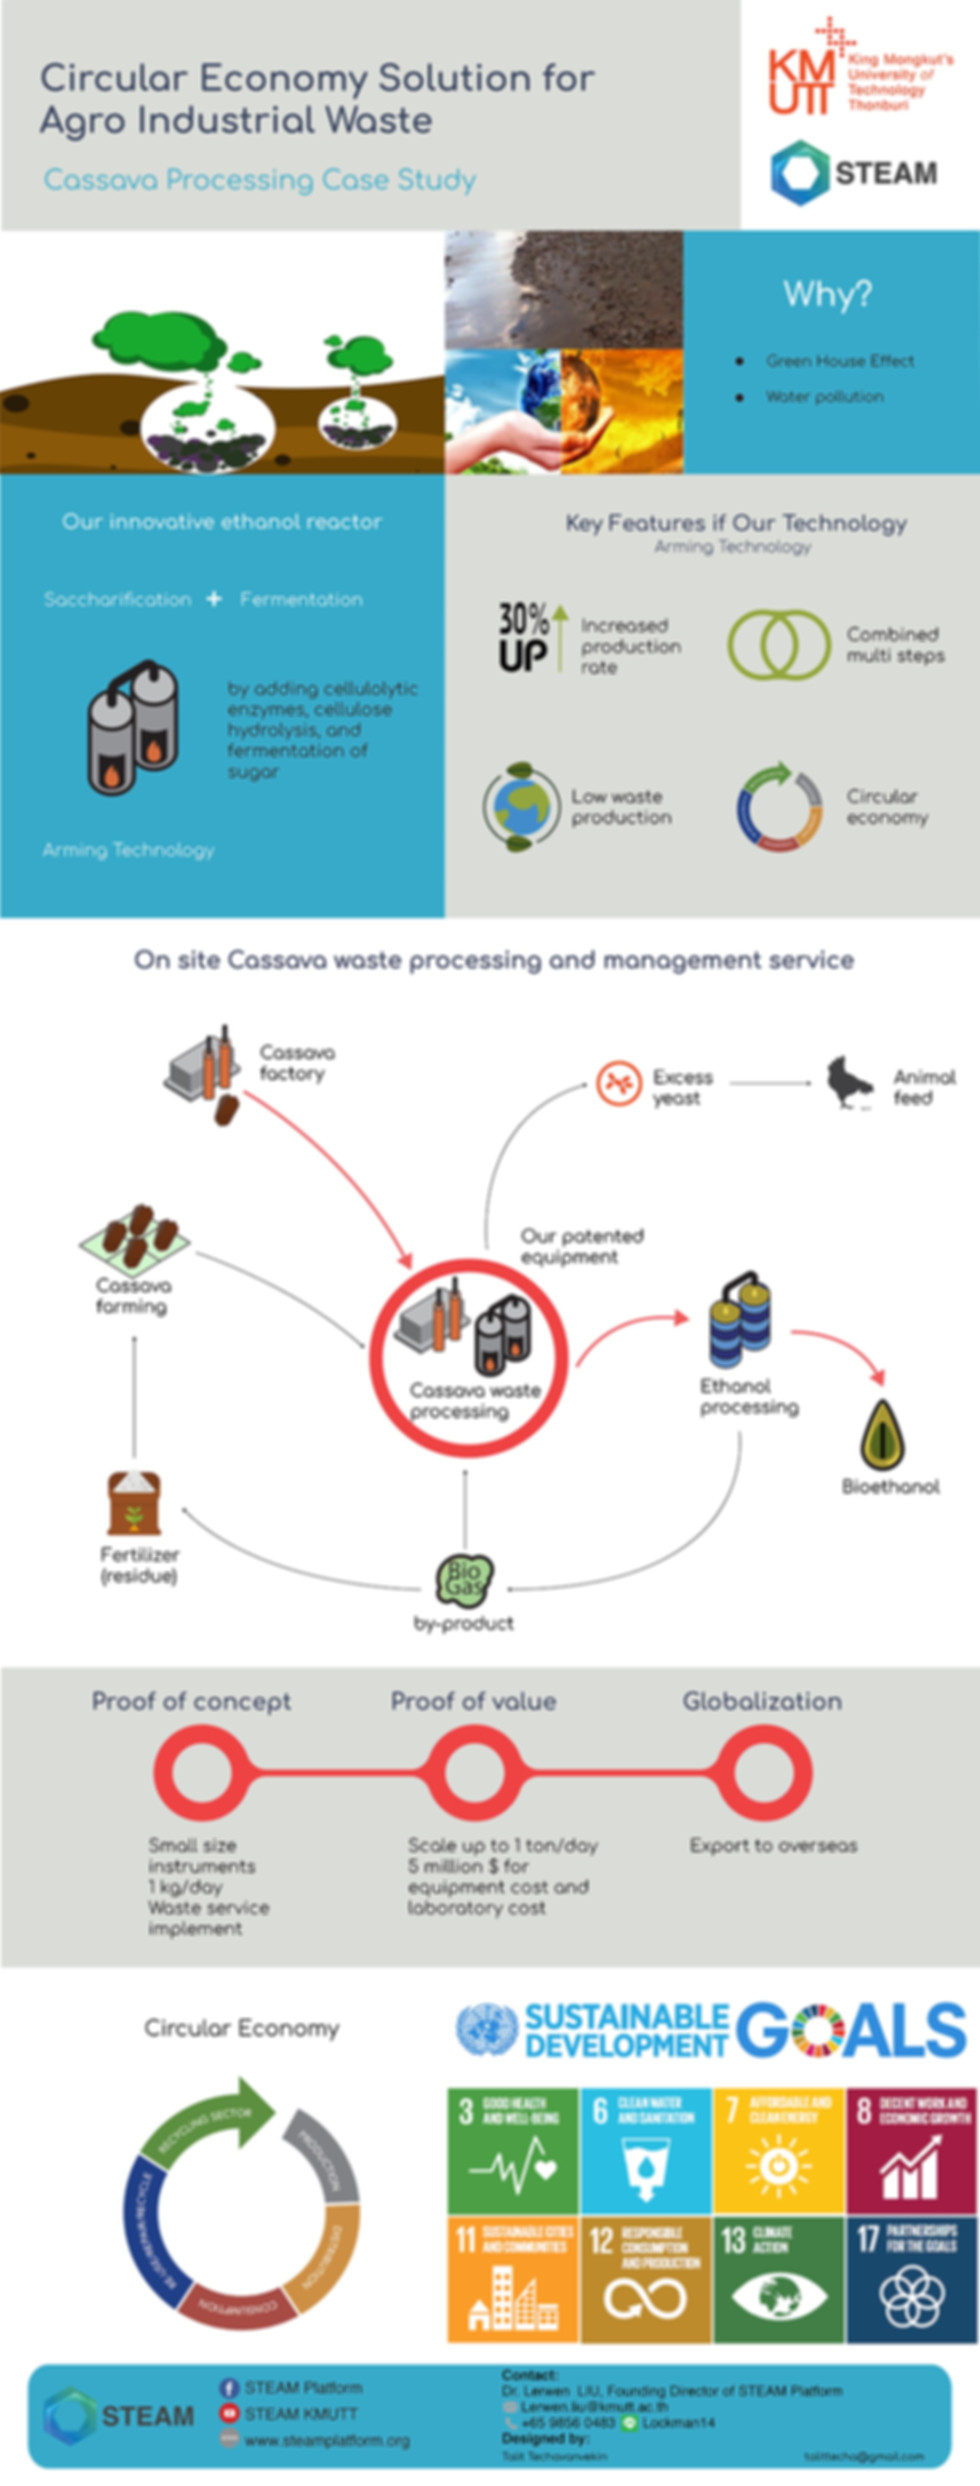 Circular Economy Solution for Agro Industrial Waste